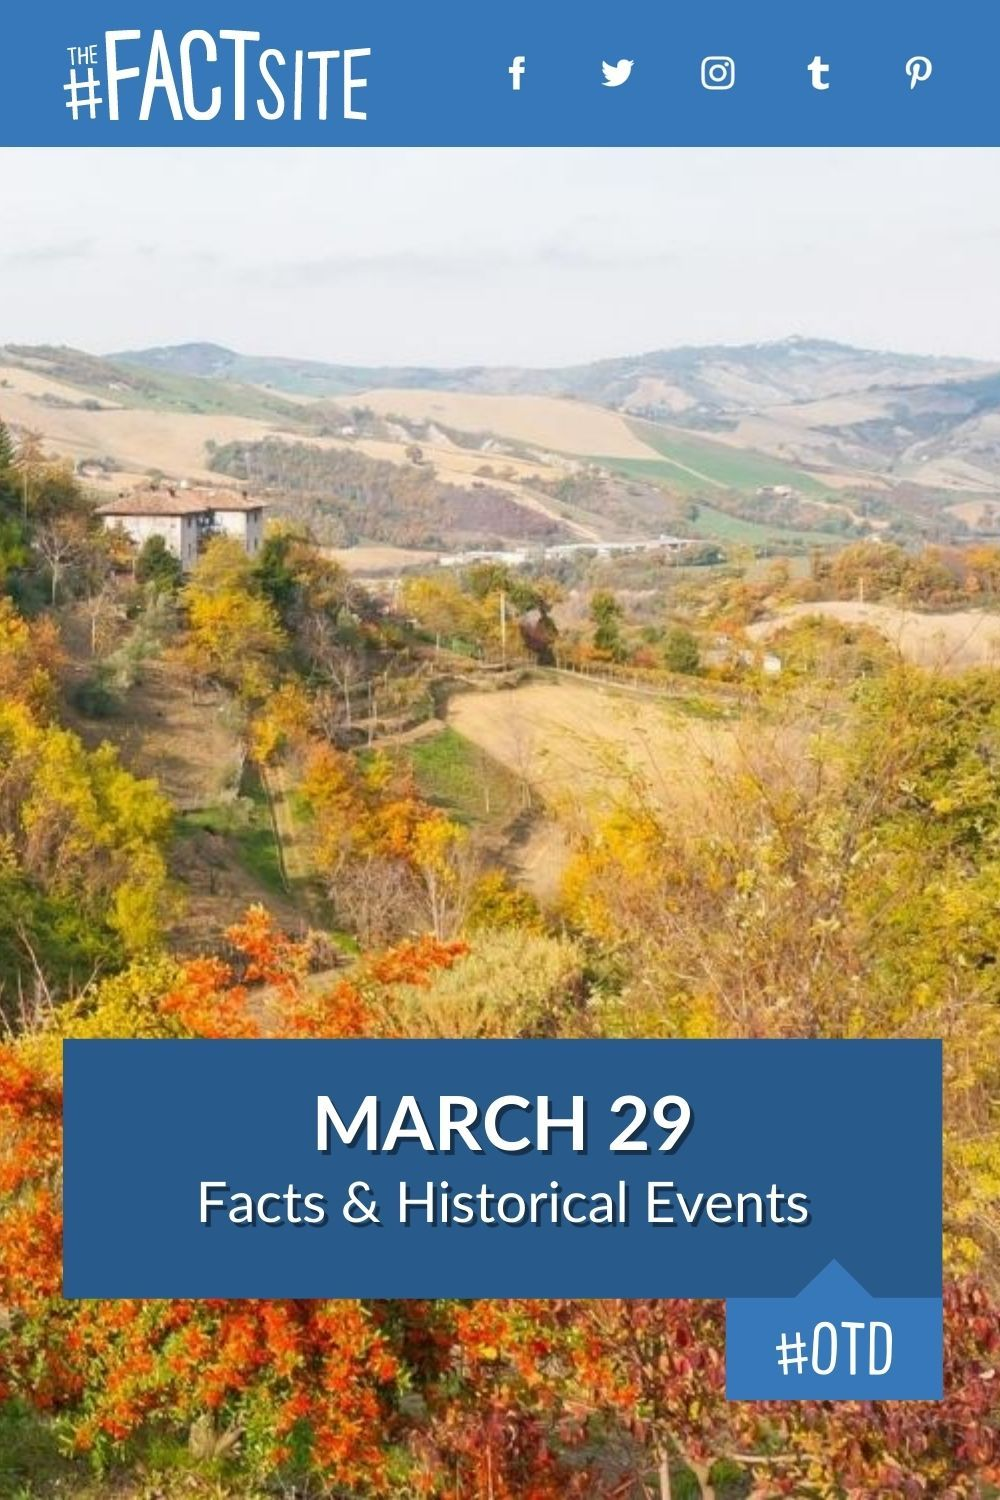 Facts & Historic Events That Happened on March 29